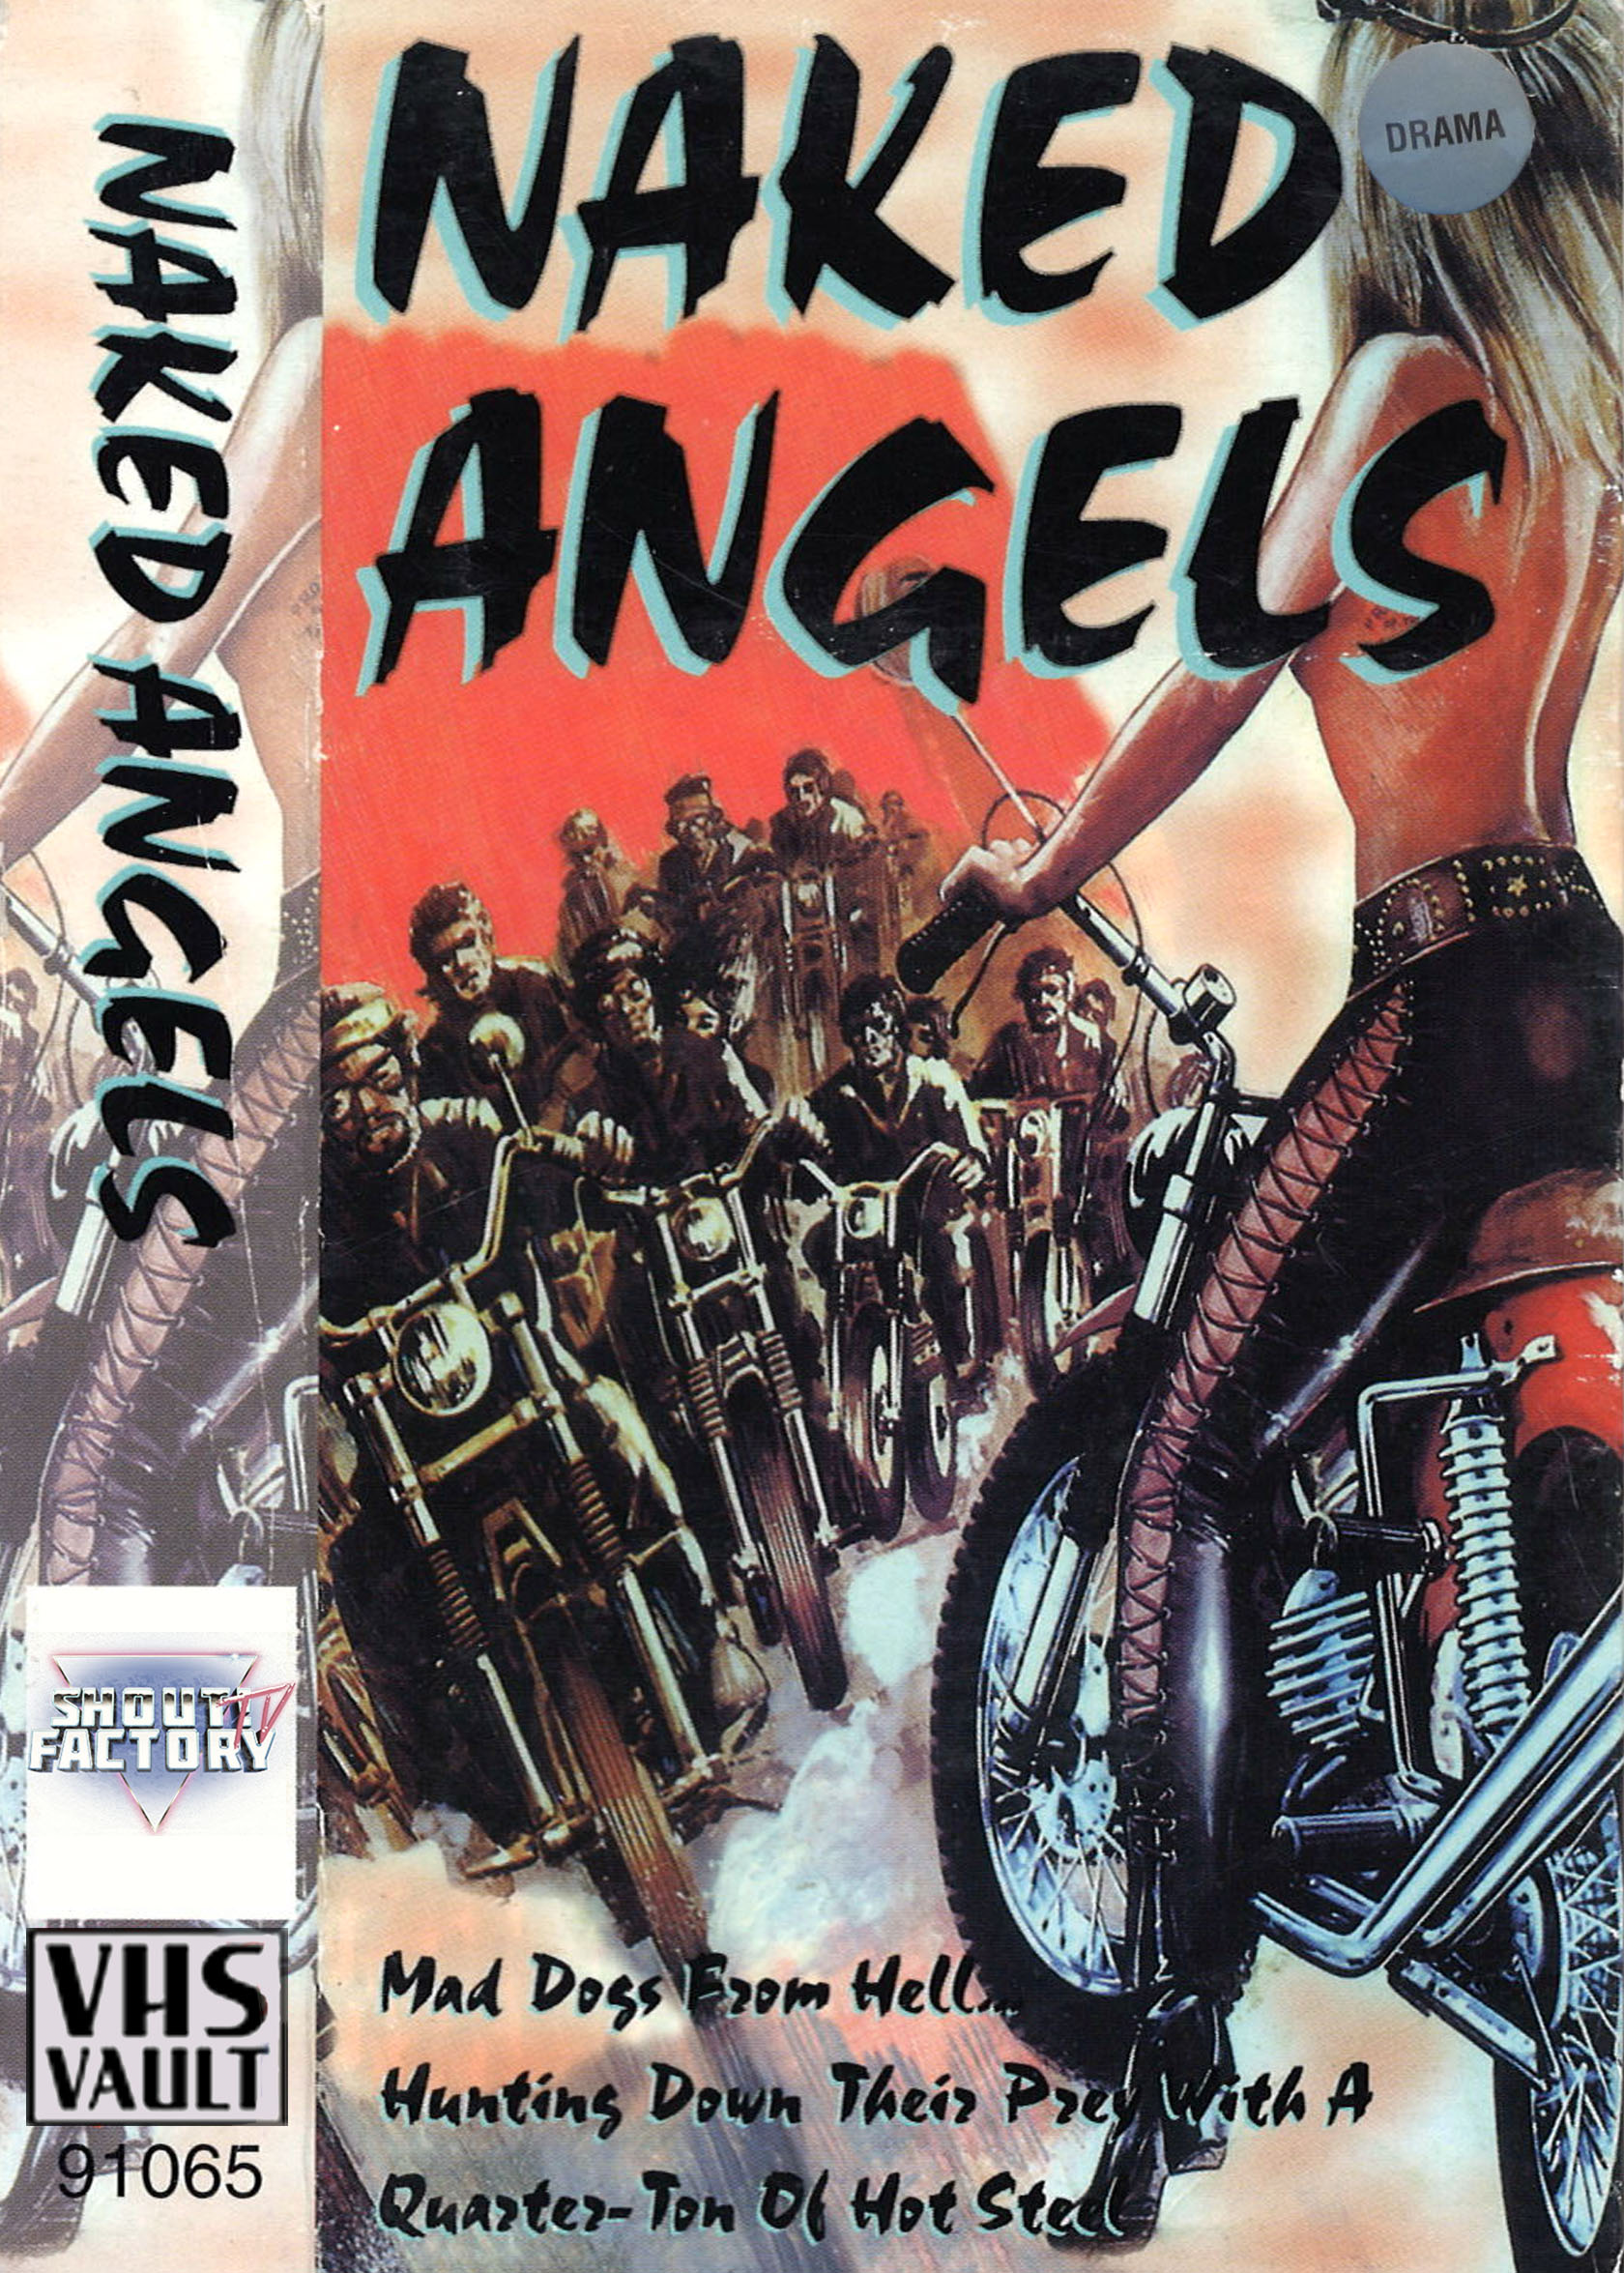 Naked Angels [VHS Vault]